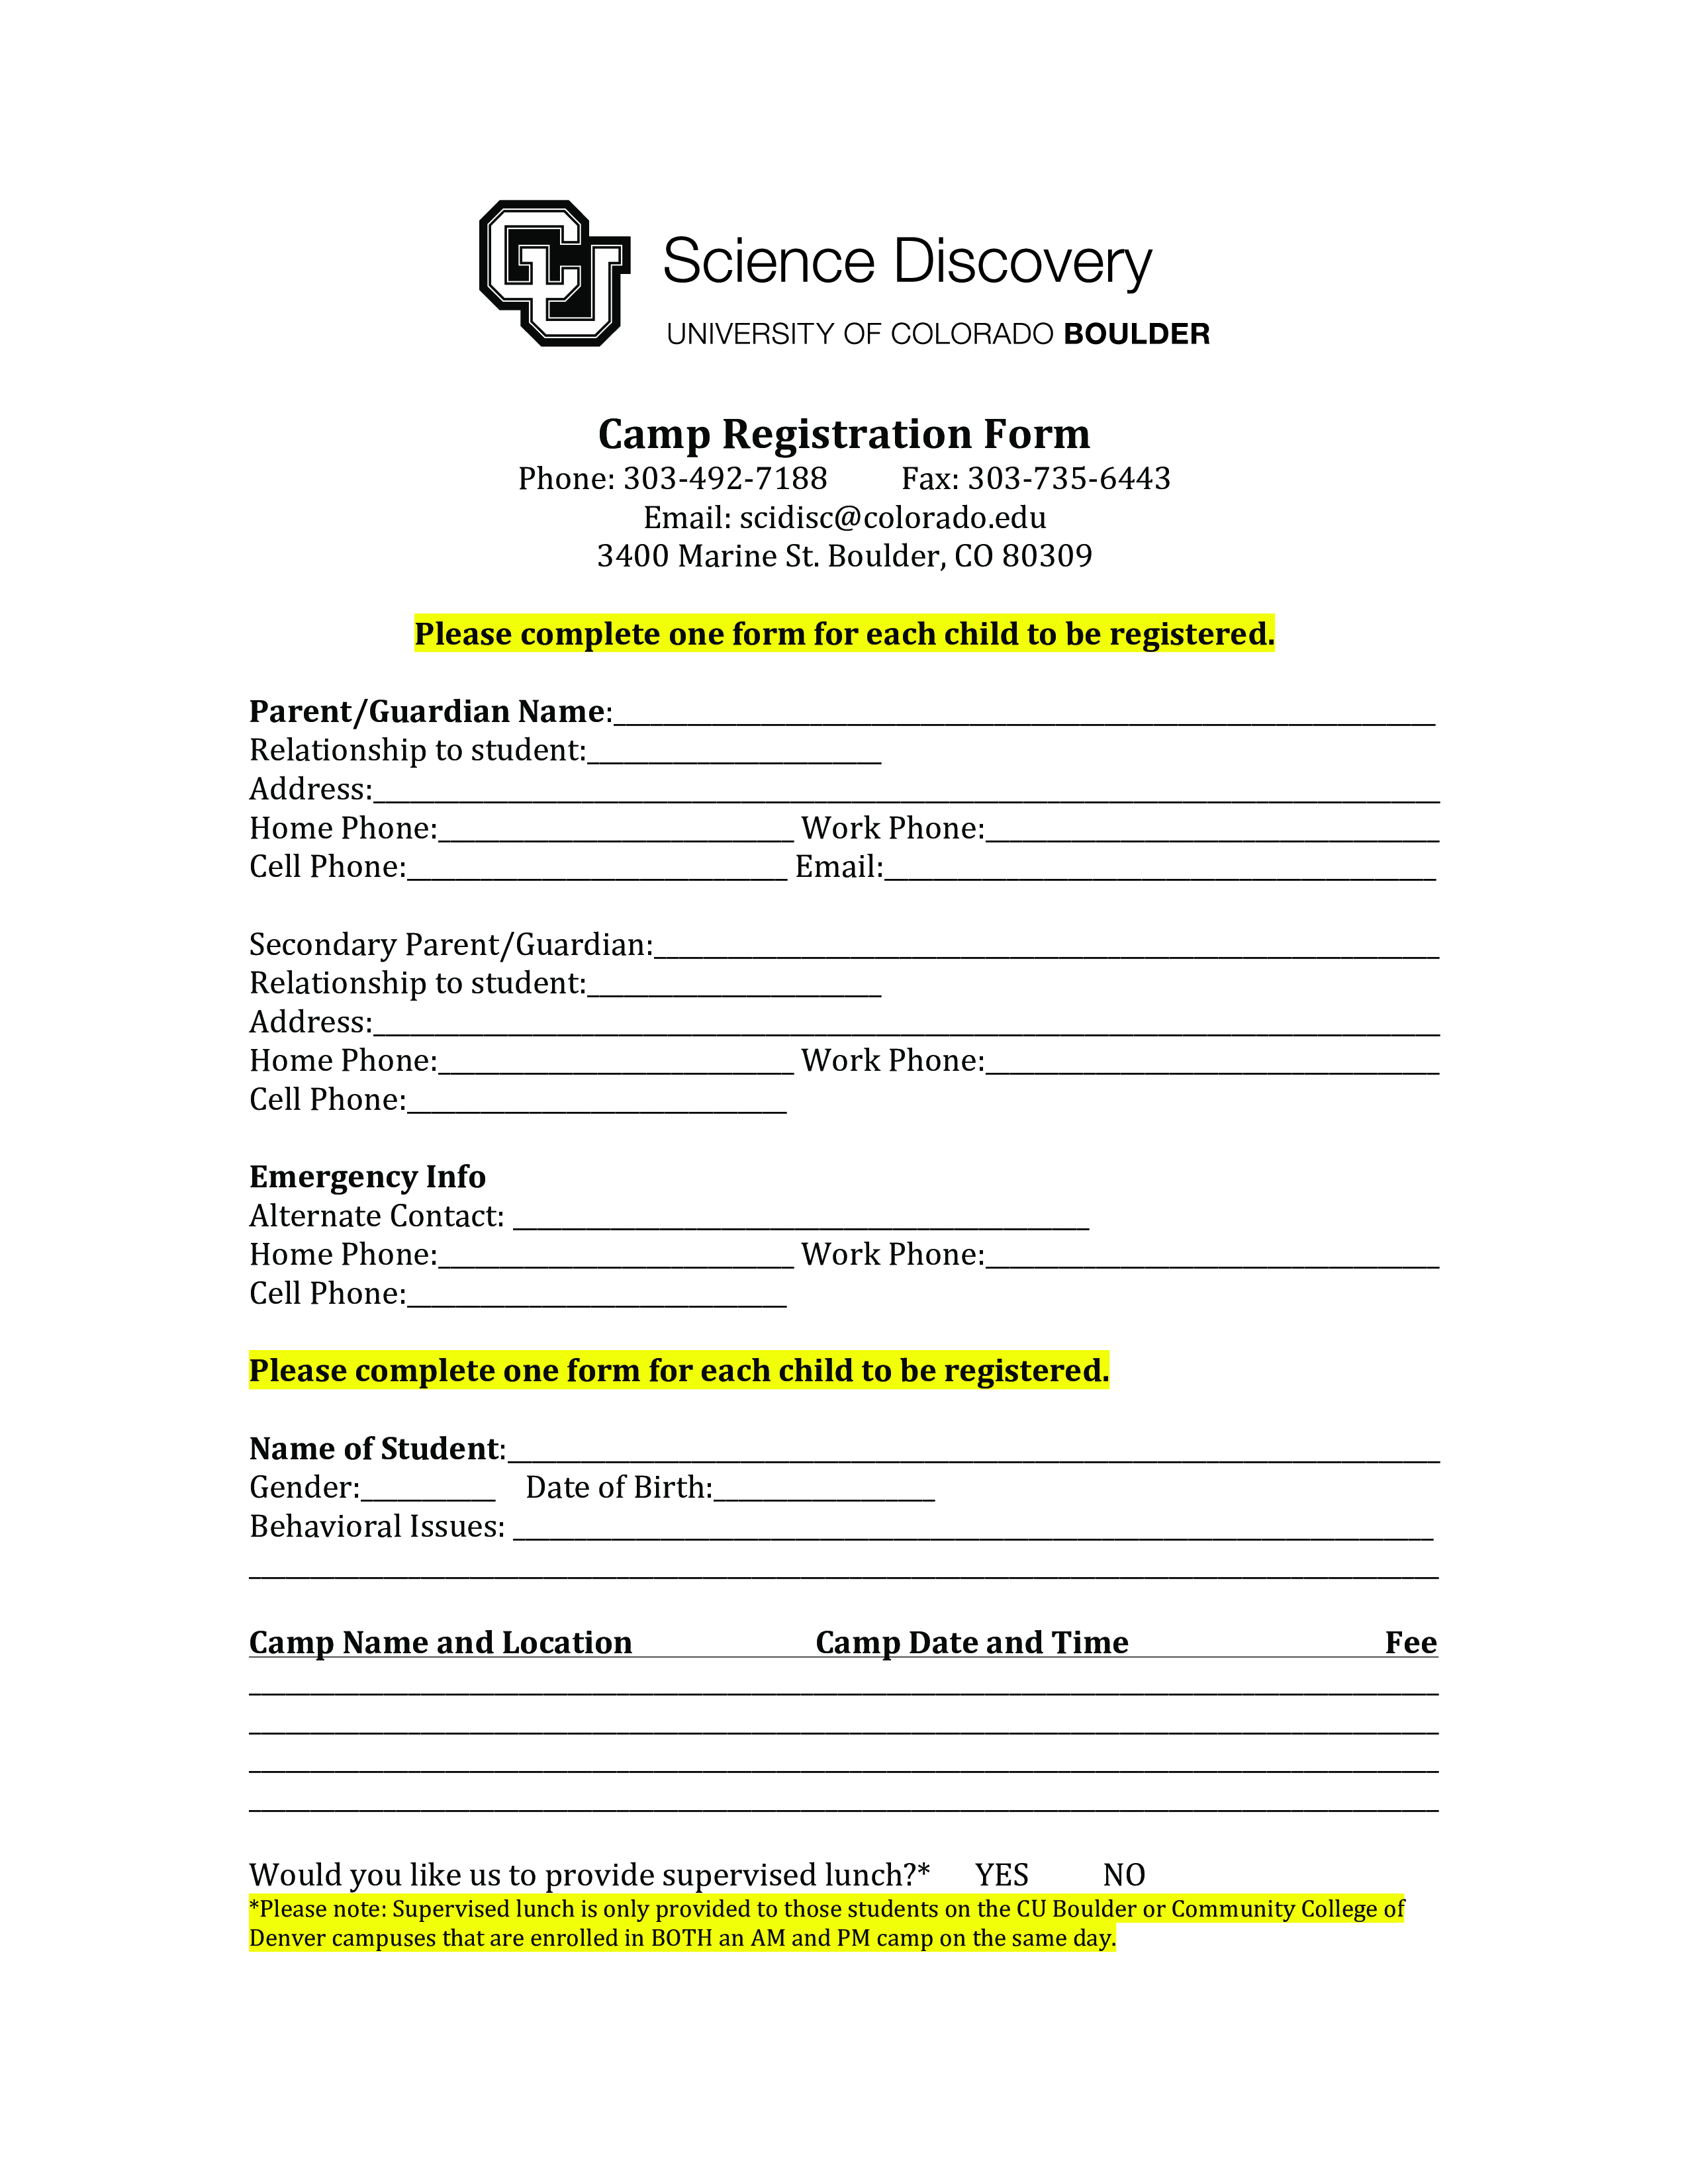 Printable Camp Registration Form Templates At